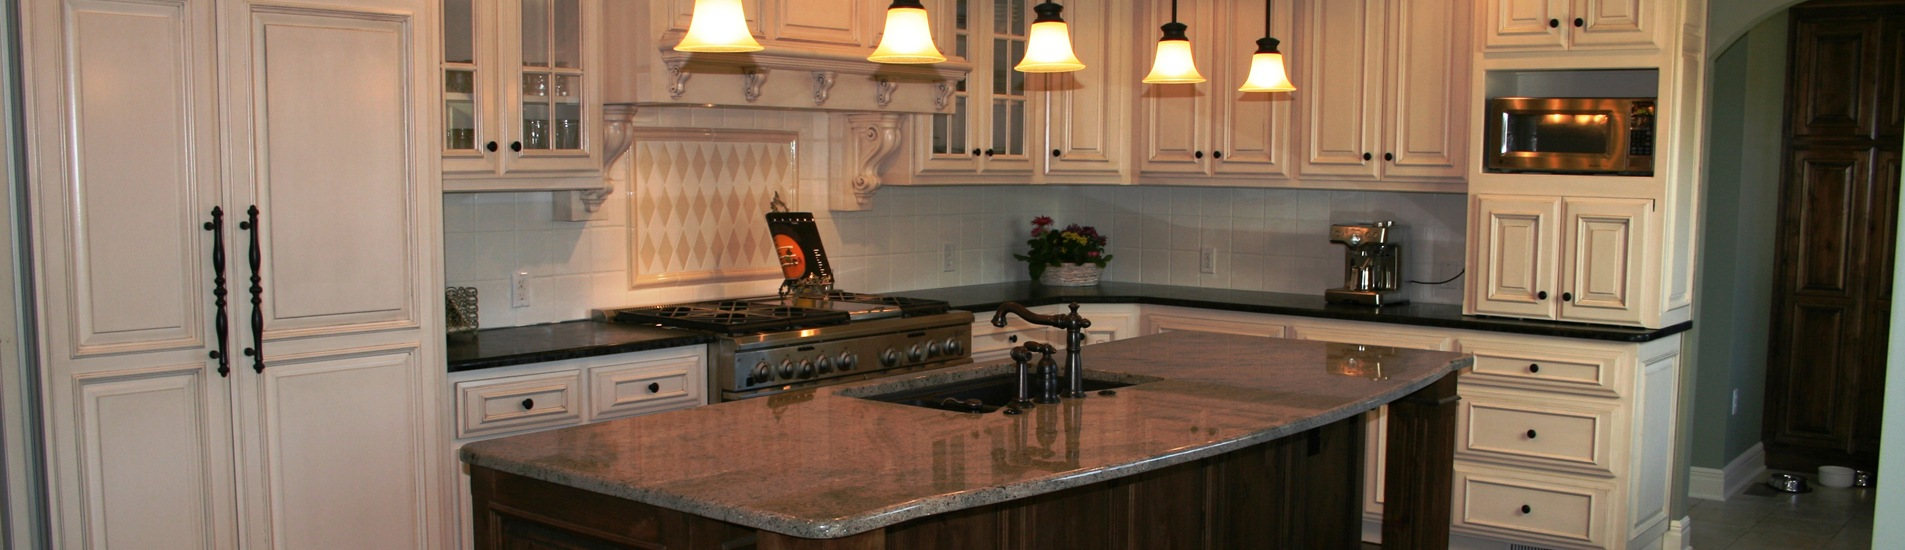 Kitchen Remodeling Contractors Kansas City Mo Review